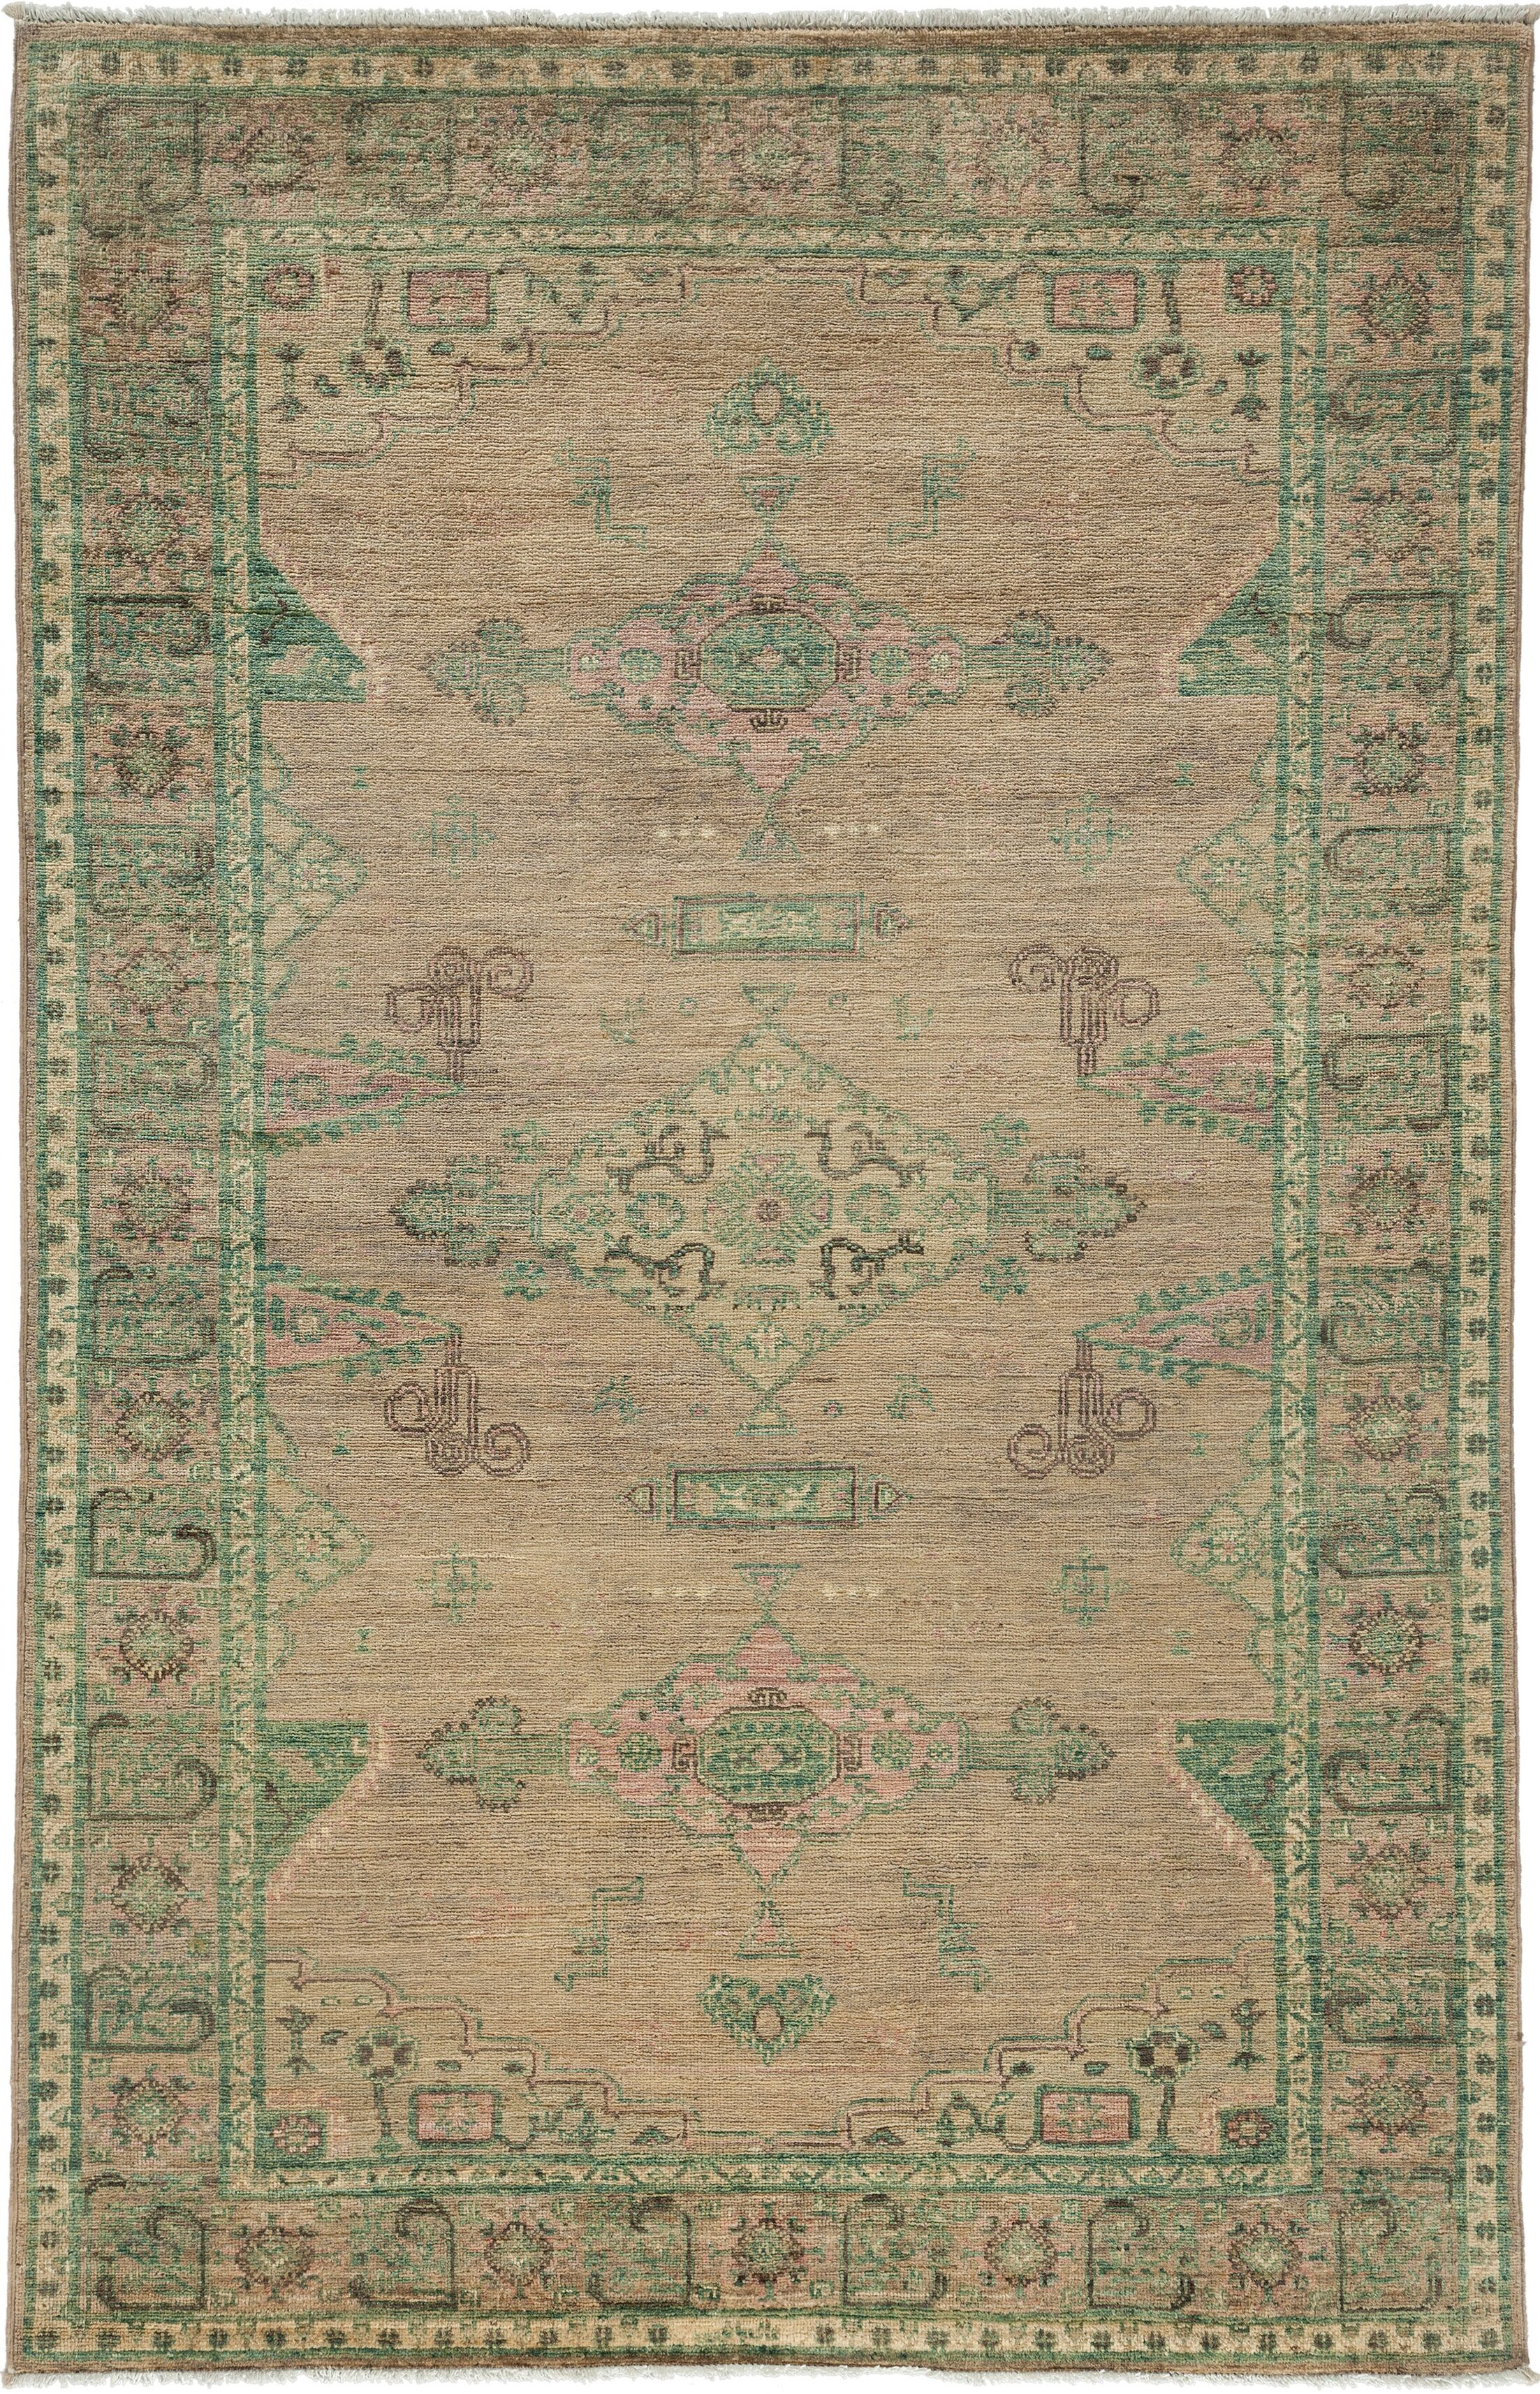 One-of-a-Kind Oushak Hand-Knotted Green / Gray Area Rug